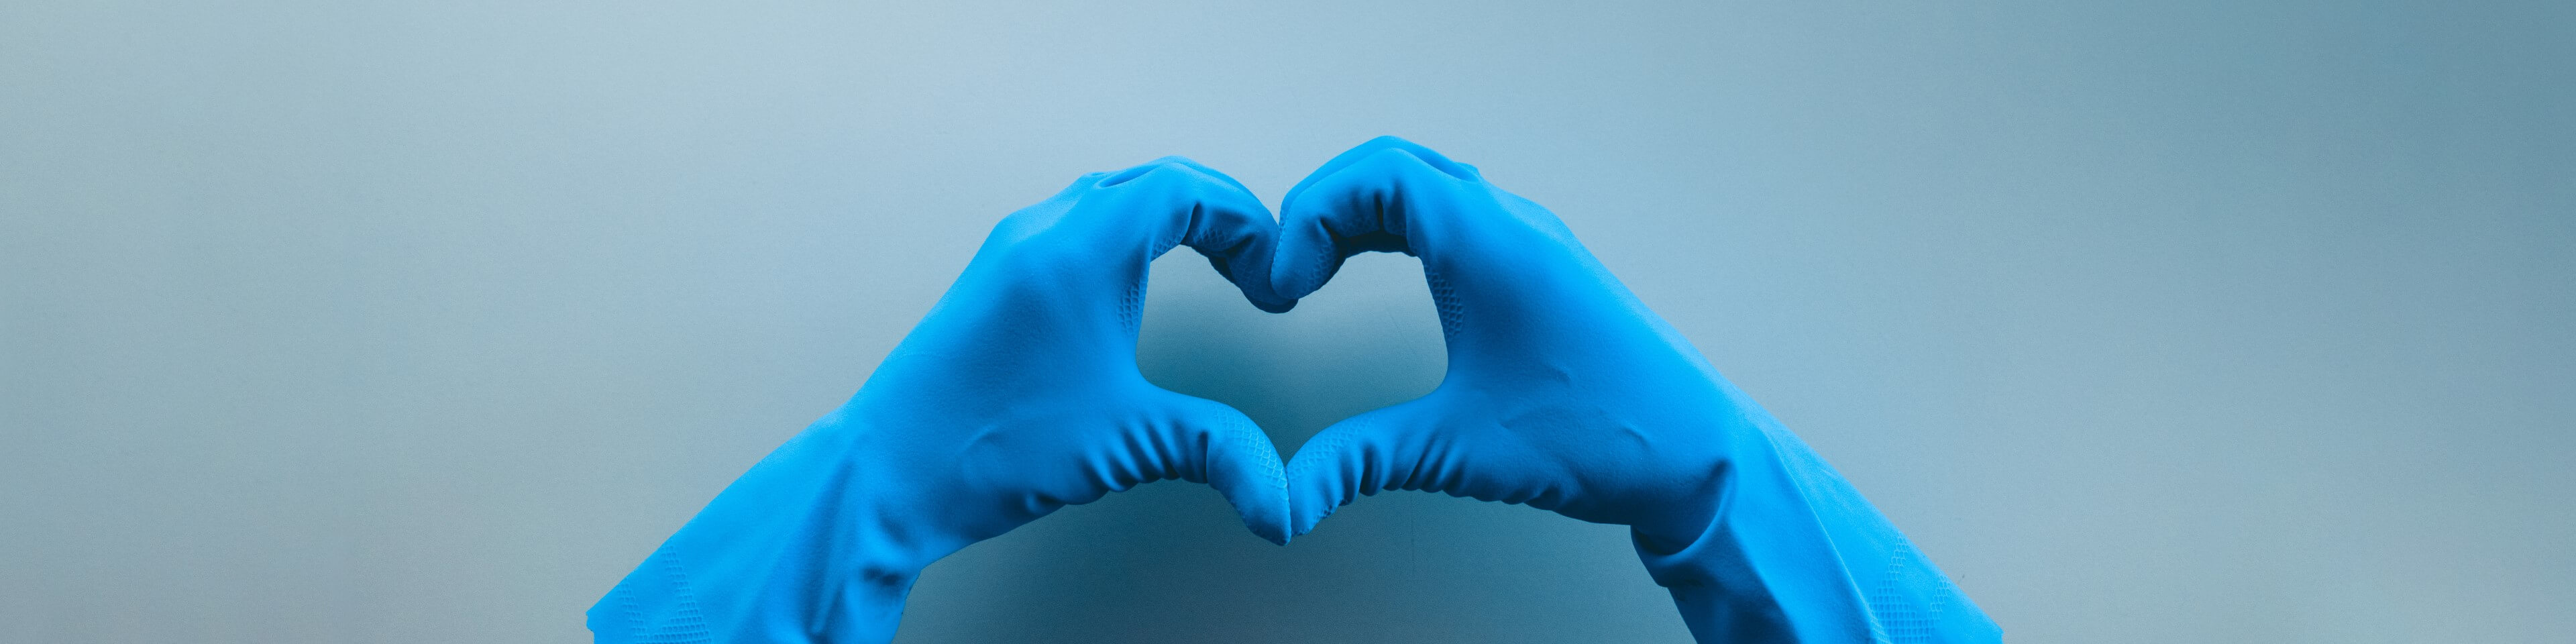 Nurse wearing protective gloves forming a heart